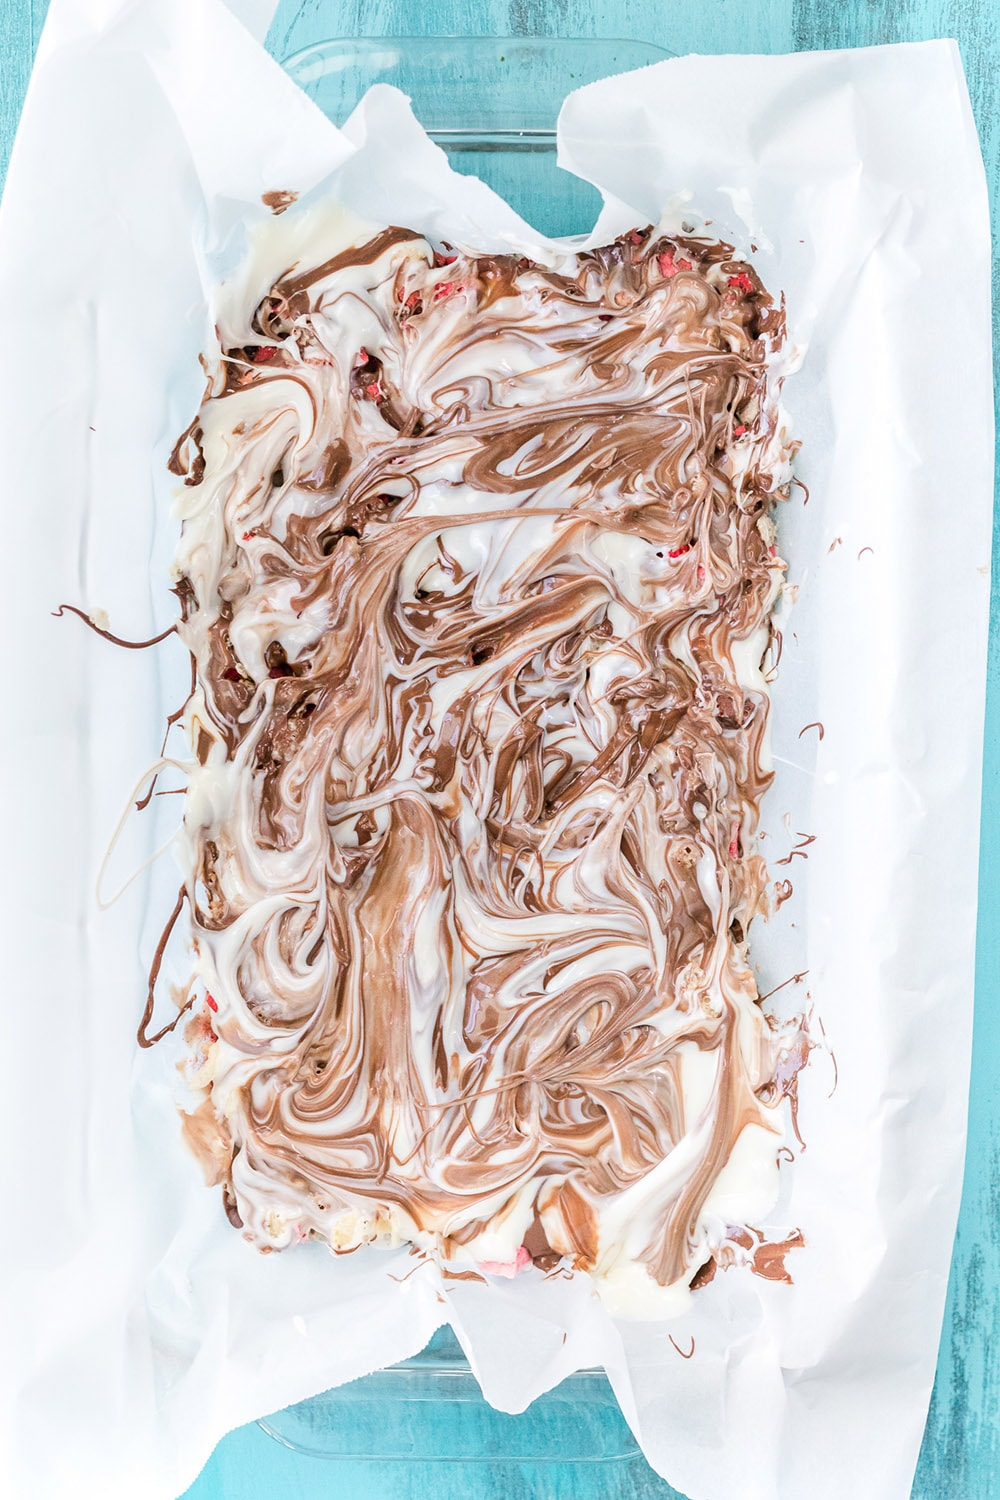 White and milk chocolate swirled together.